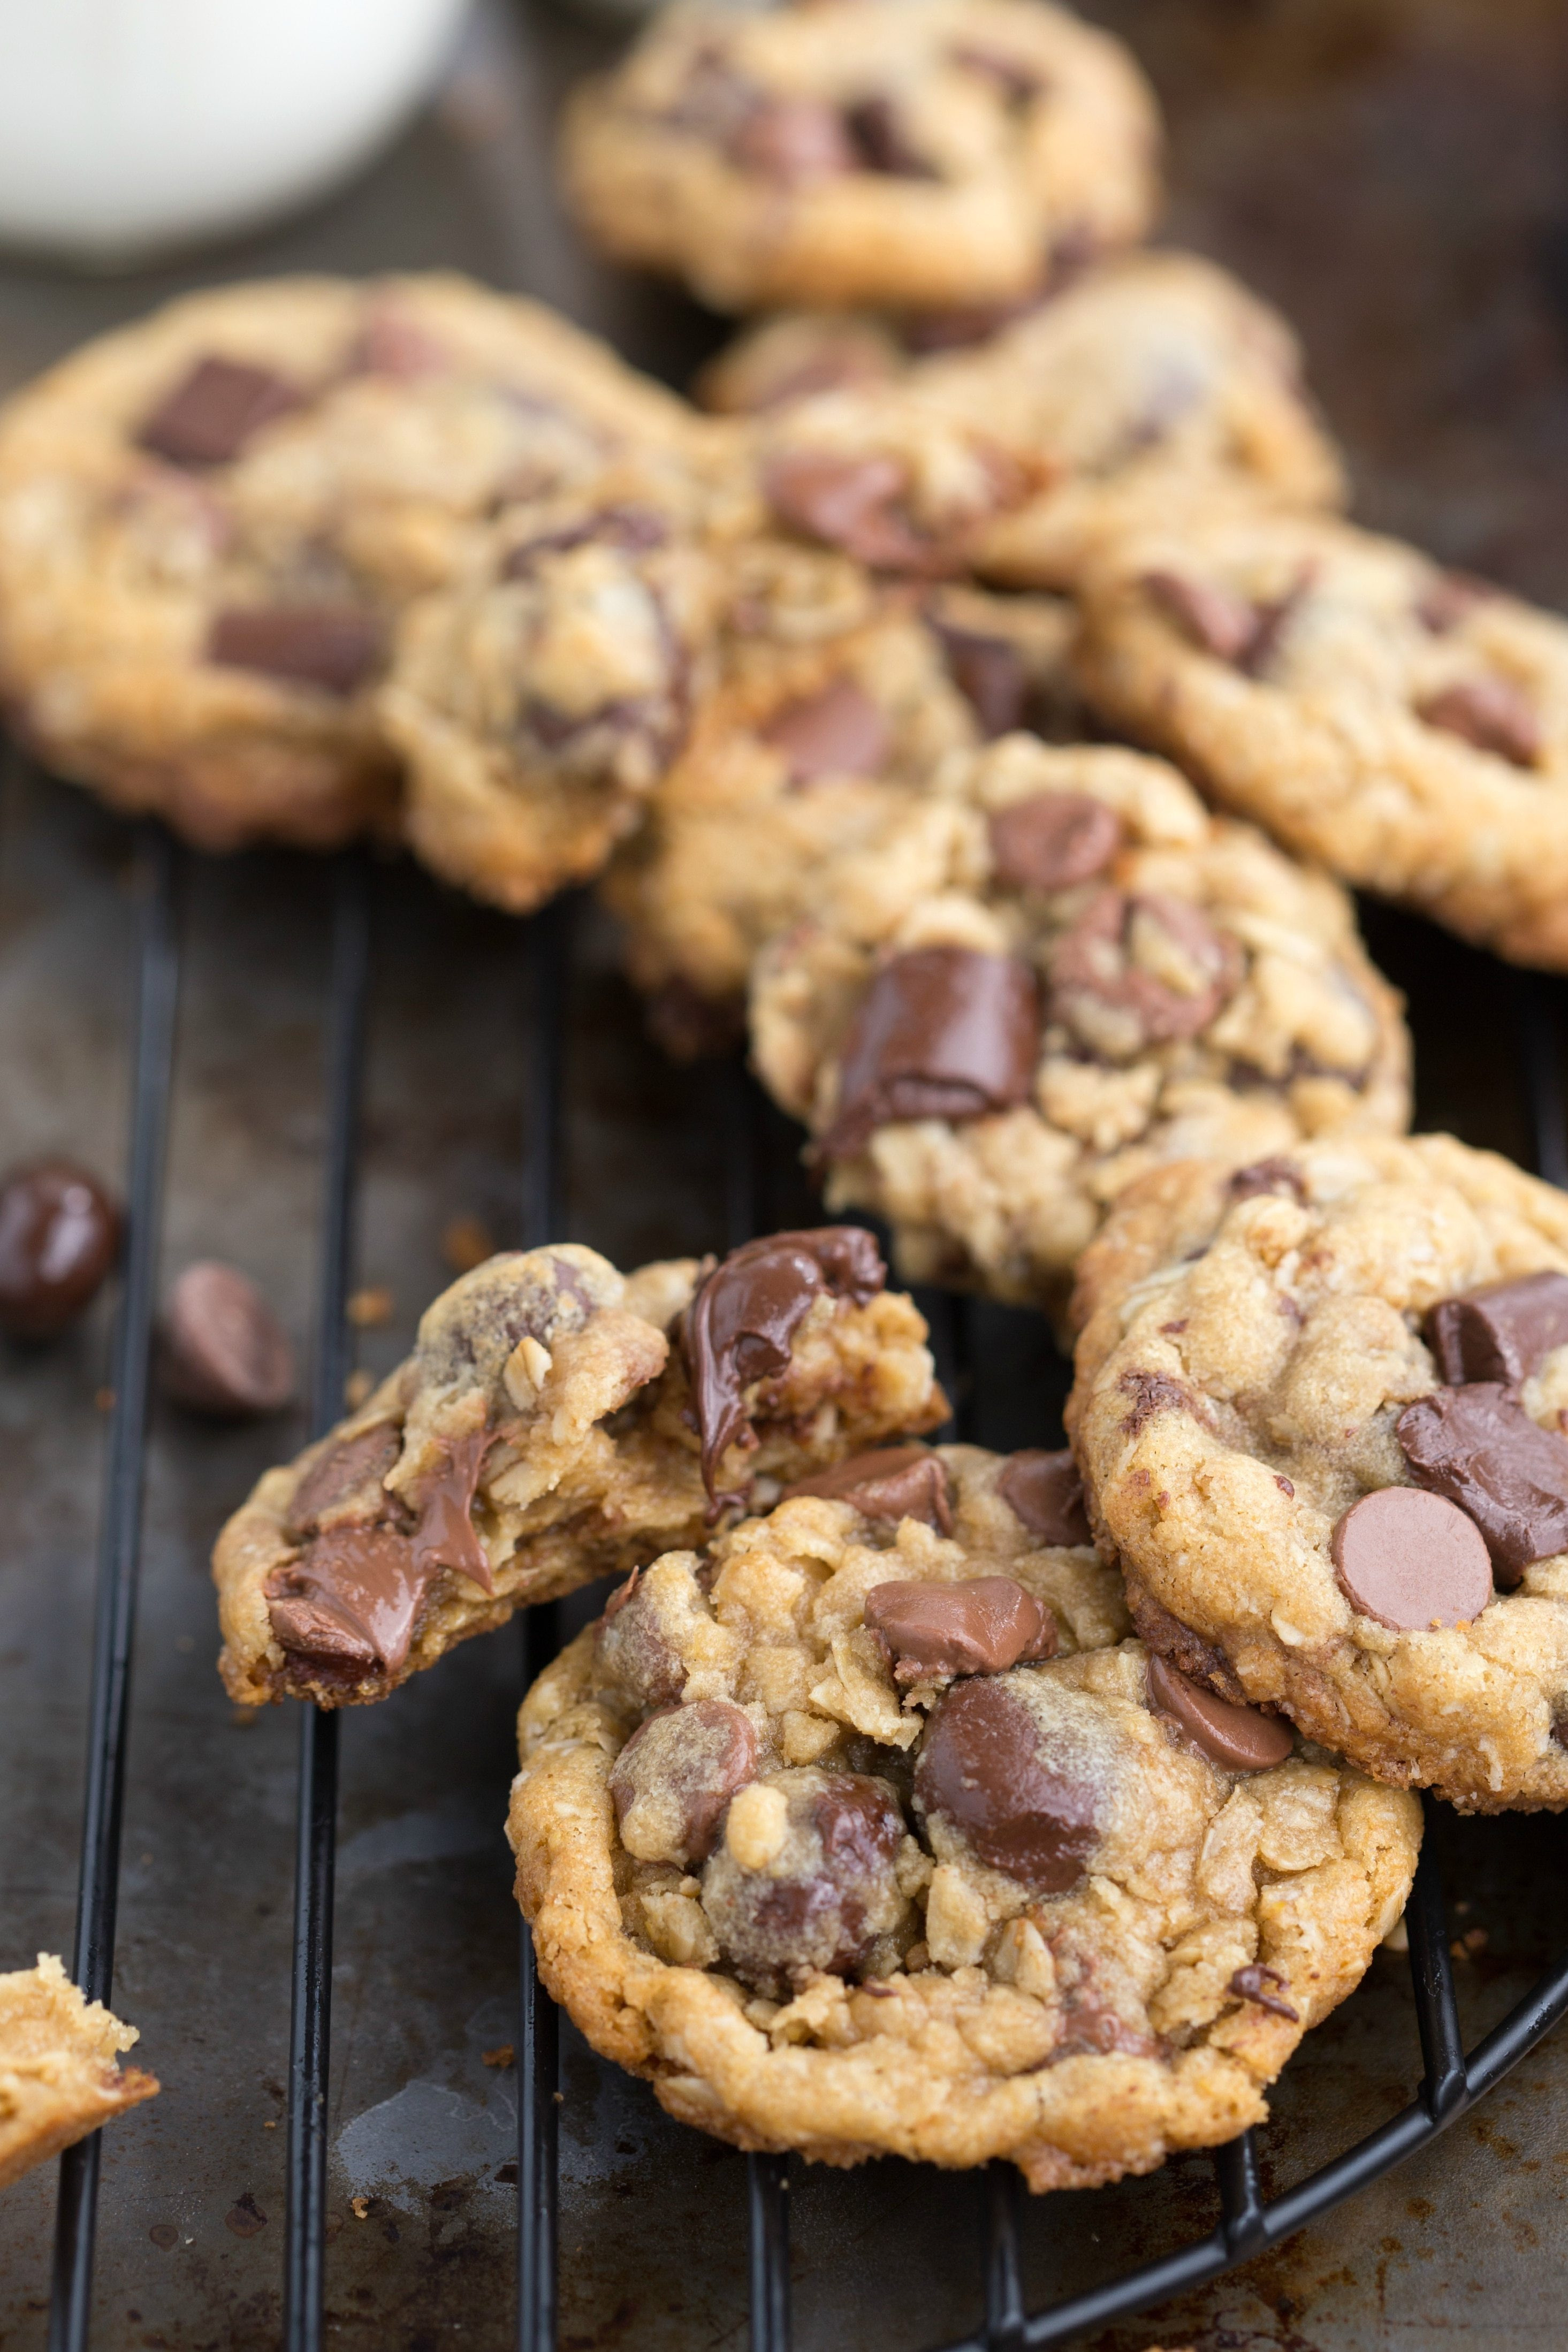 Chocolate Oatmeal Cookies Healthy  Healthier Oatmeal Chocolate Chip Cookies with Dark